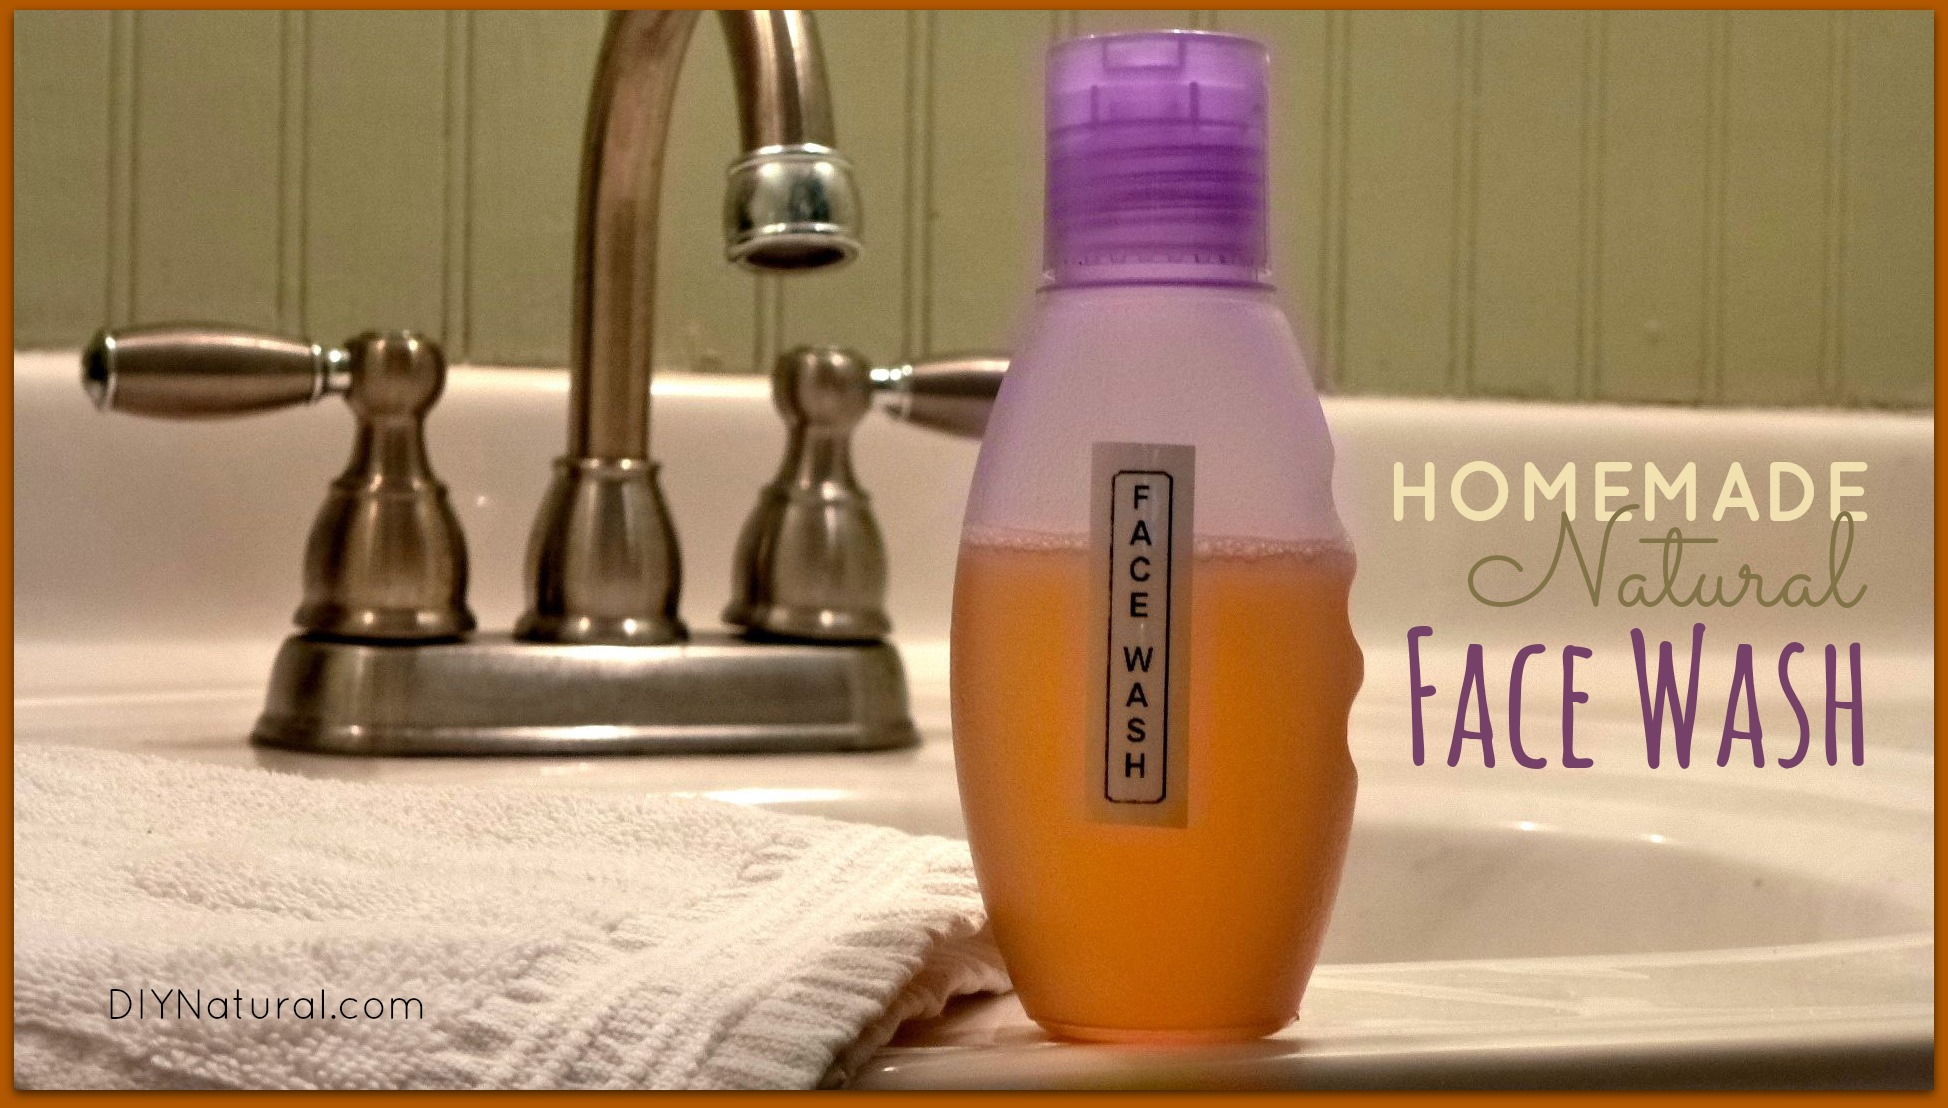 Homemade Face Wash DIY